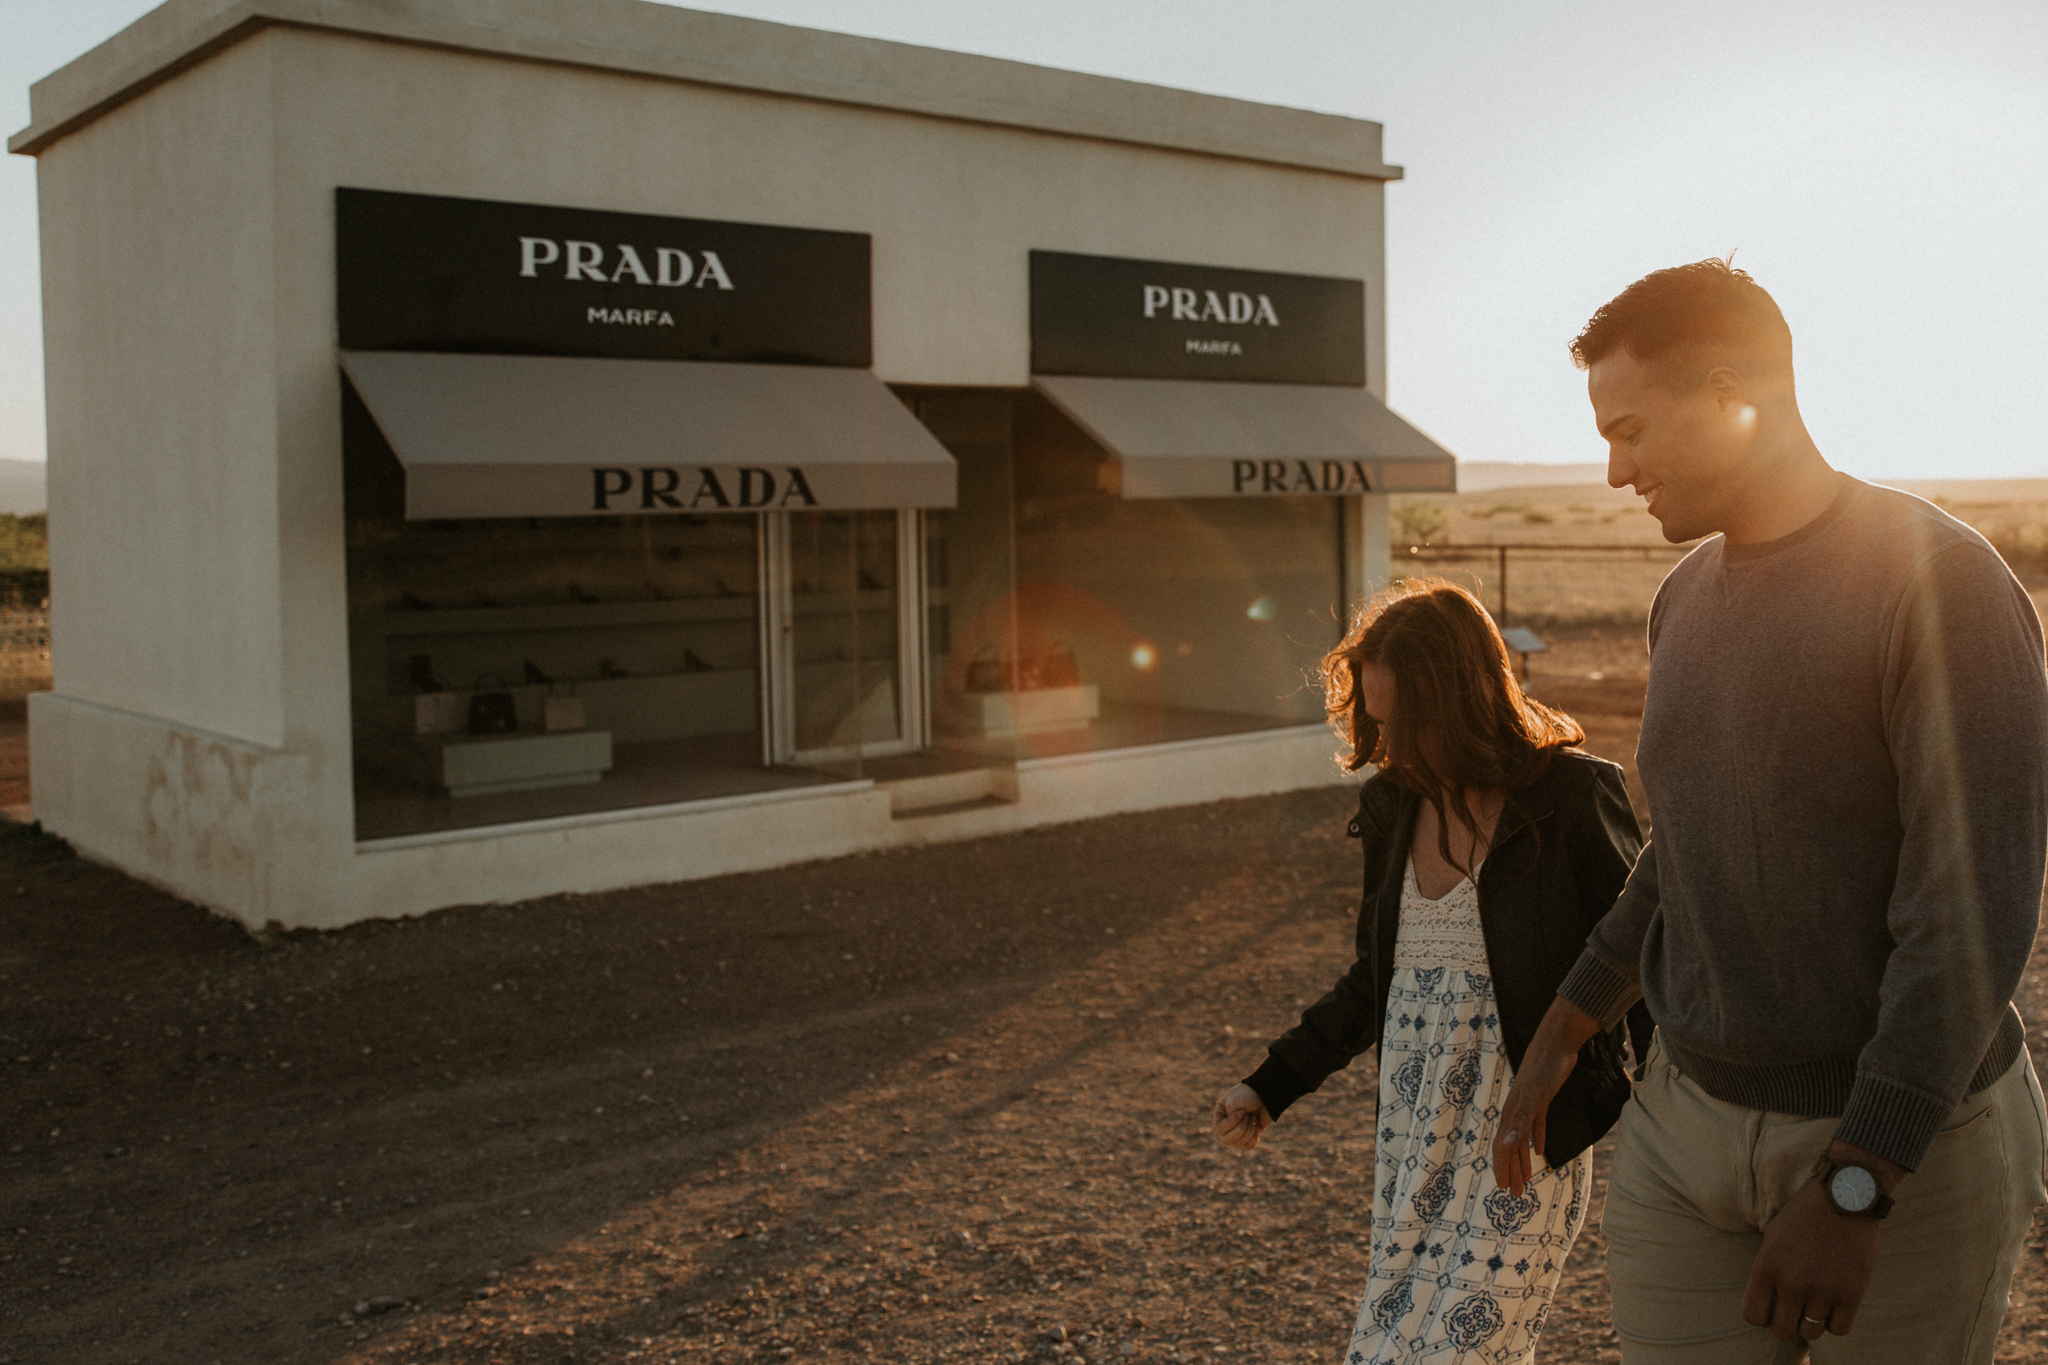 prada marfa couples photoshoot